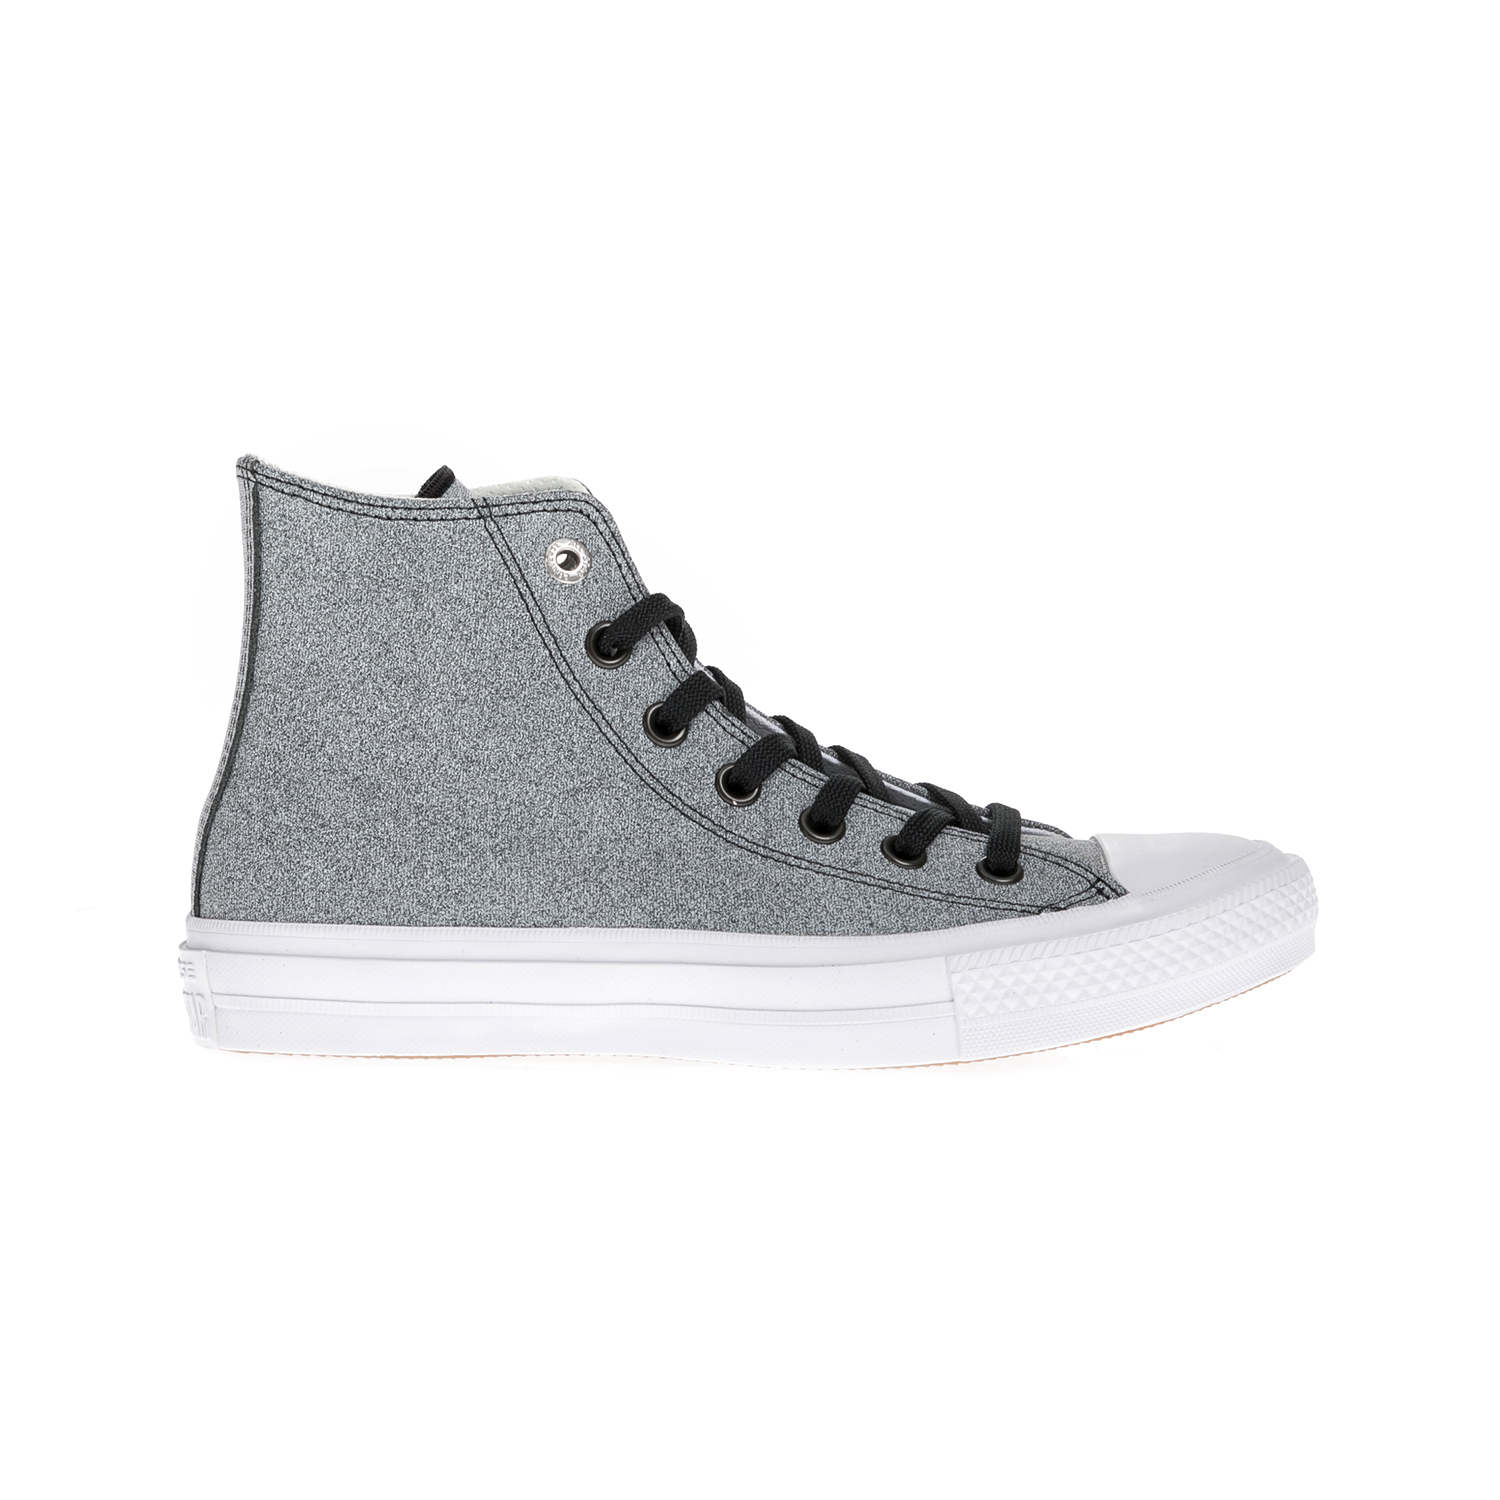 993ec64d5e5 CONVERSE - Unisex μποτάκια Chuck Taylor All Star II Hi γκρι ...